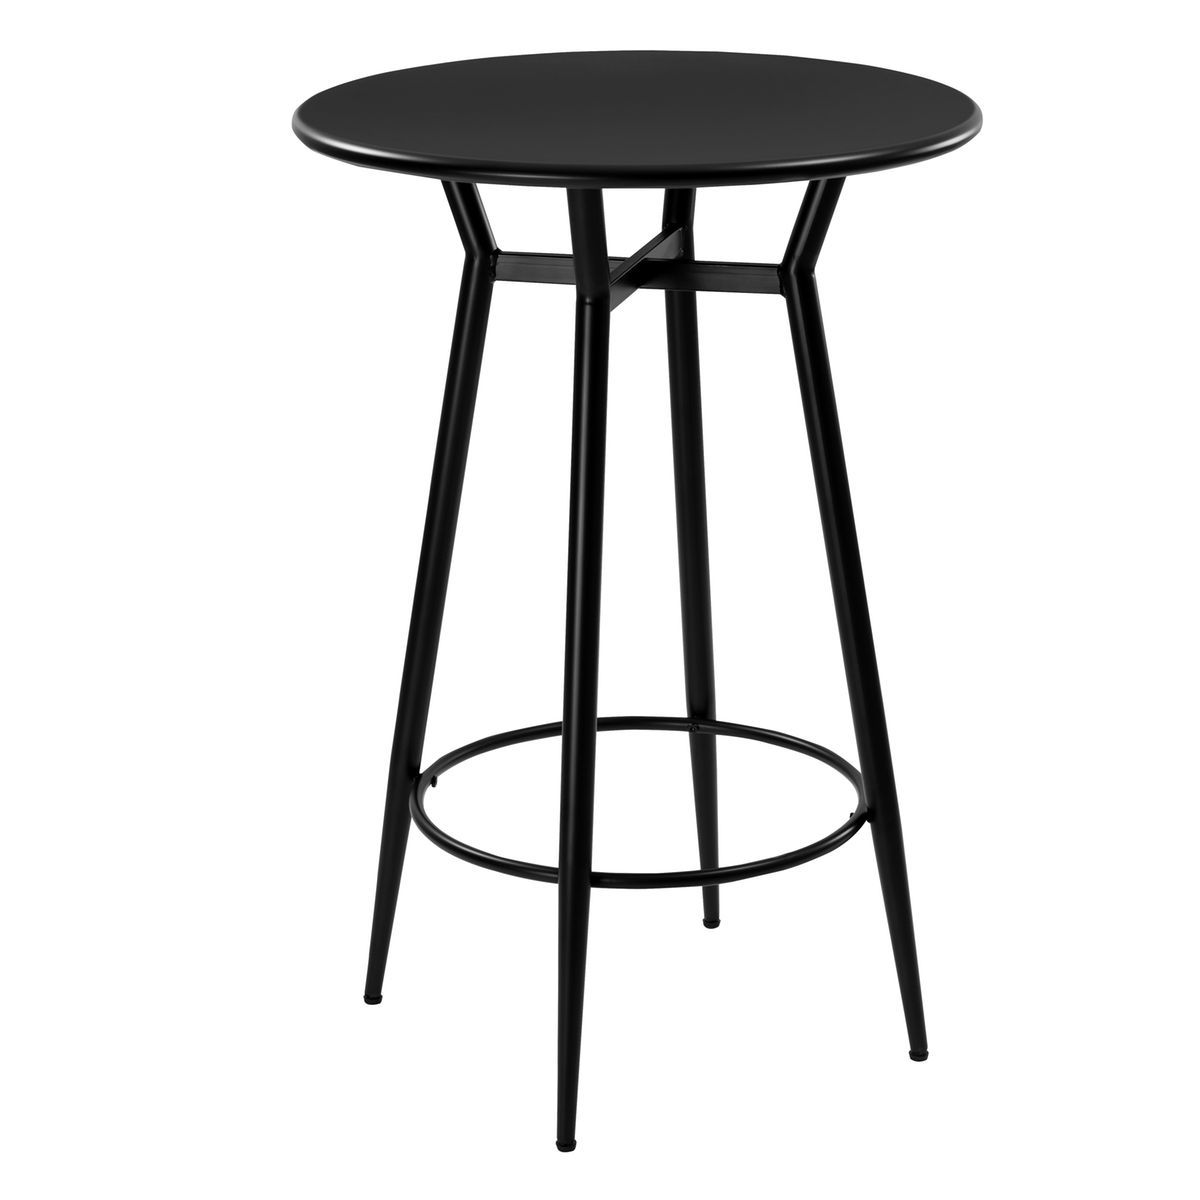 Table De Bar Noir.Table De Bar Homer En Metal Noir Products Table De Bar